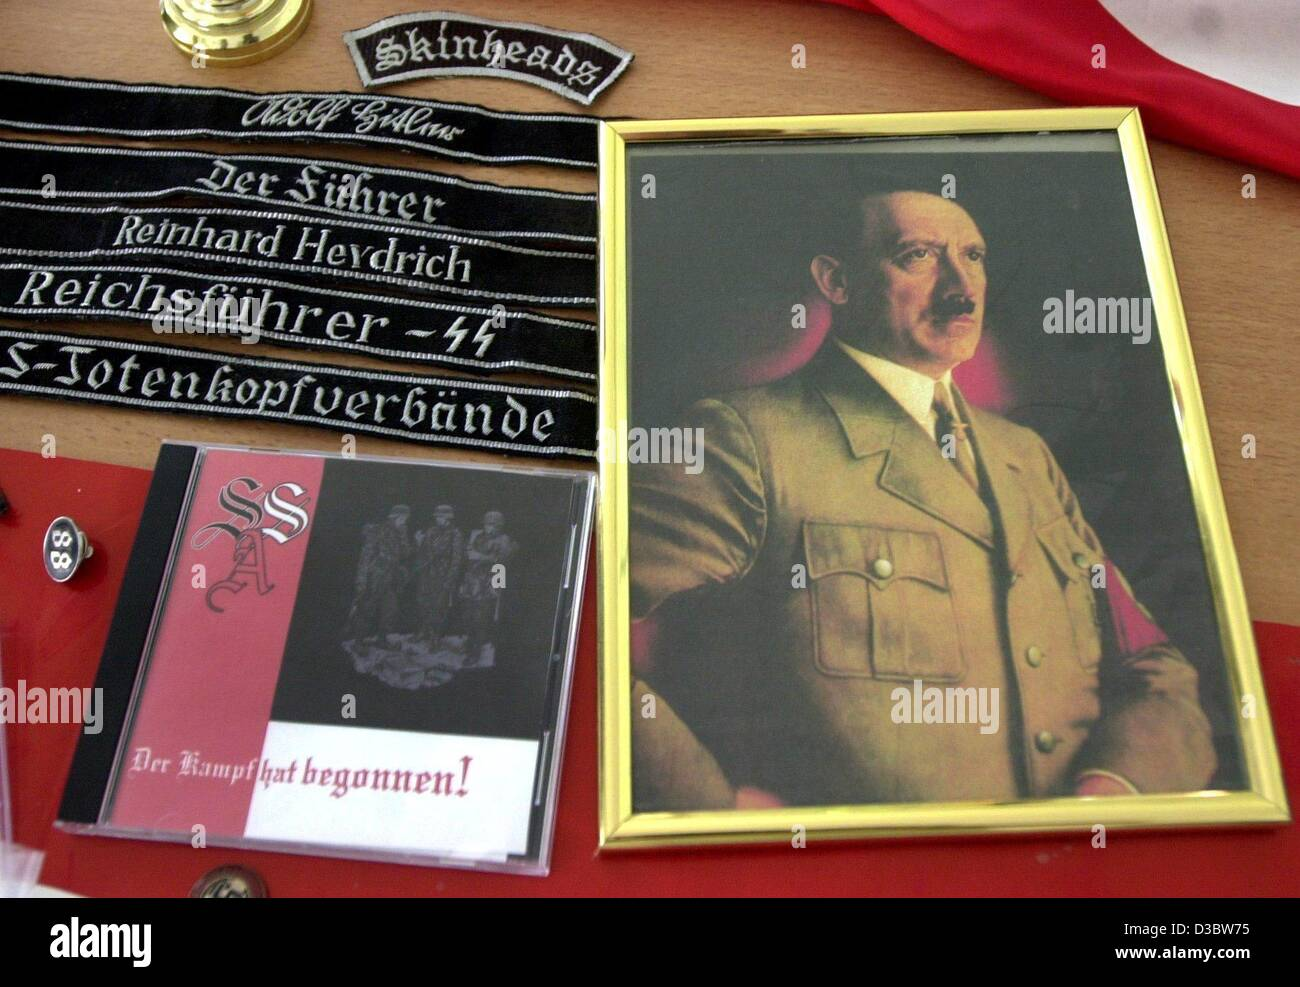 (dpa) - Right extremist propaganda material including a Hitler portrait were confiscated by police in Halberstadt, - Stock Image